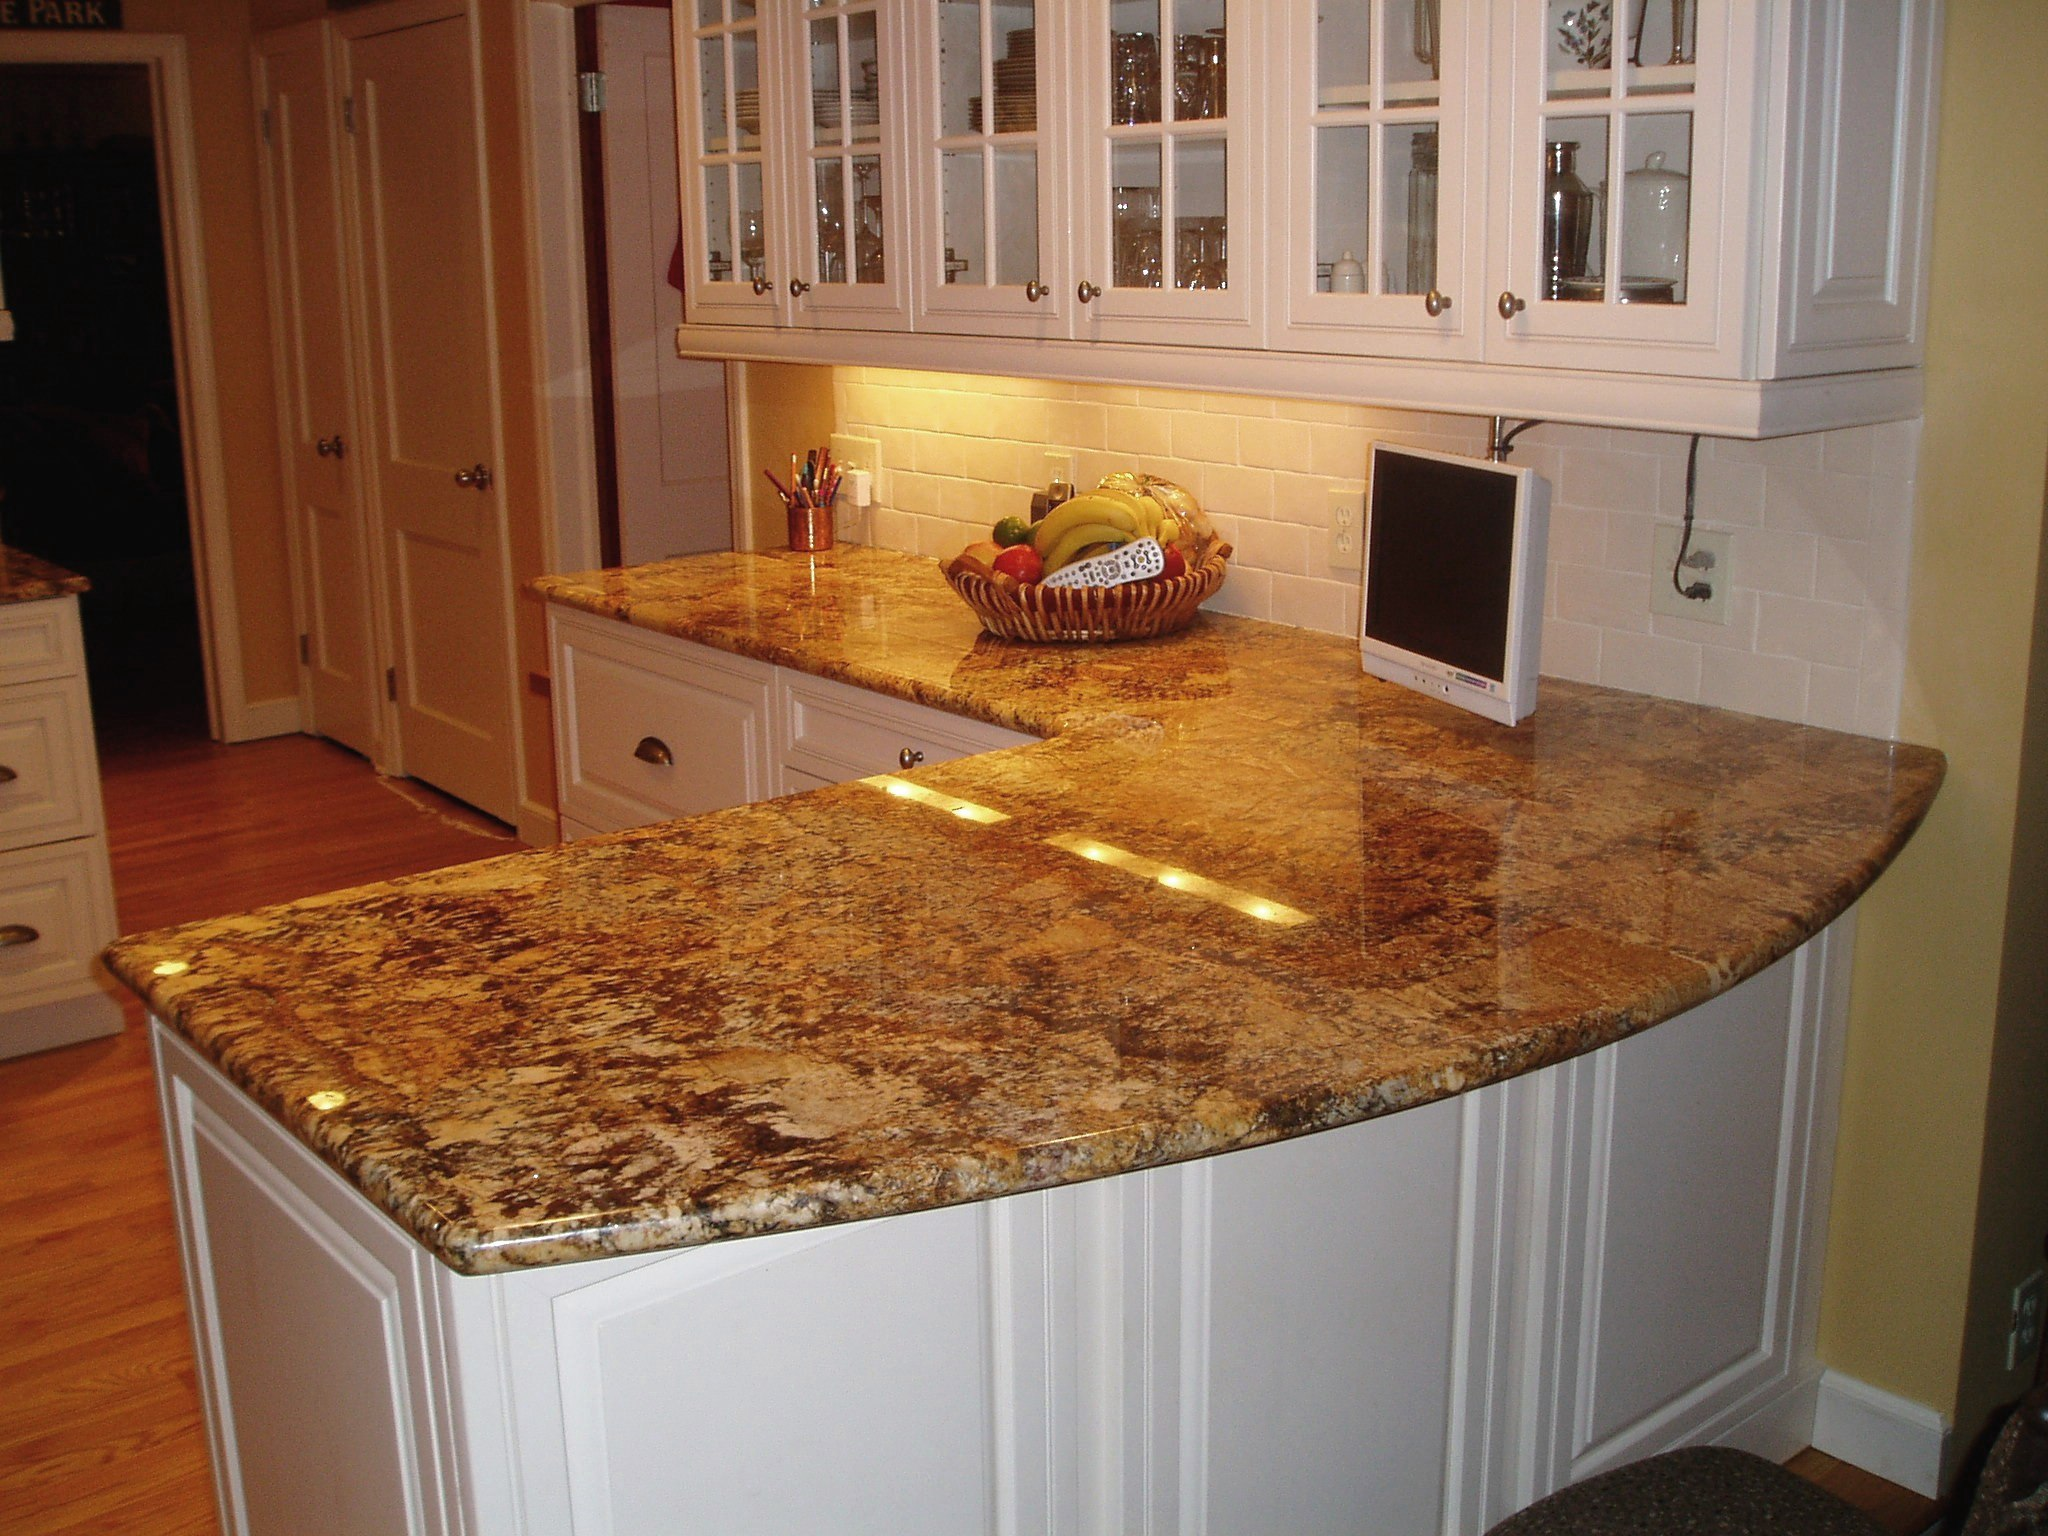 glossy granite countertop with L letter shape a high tech monitor crafted rattan fruits basket top glass door cabinetry